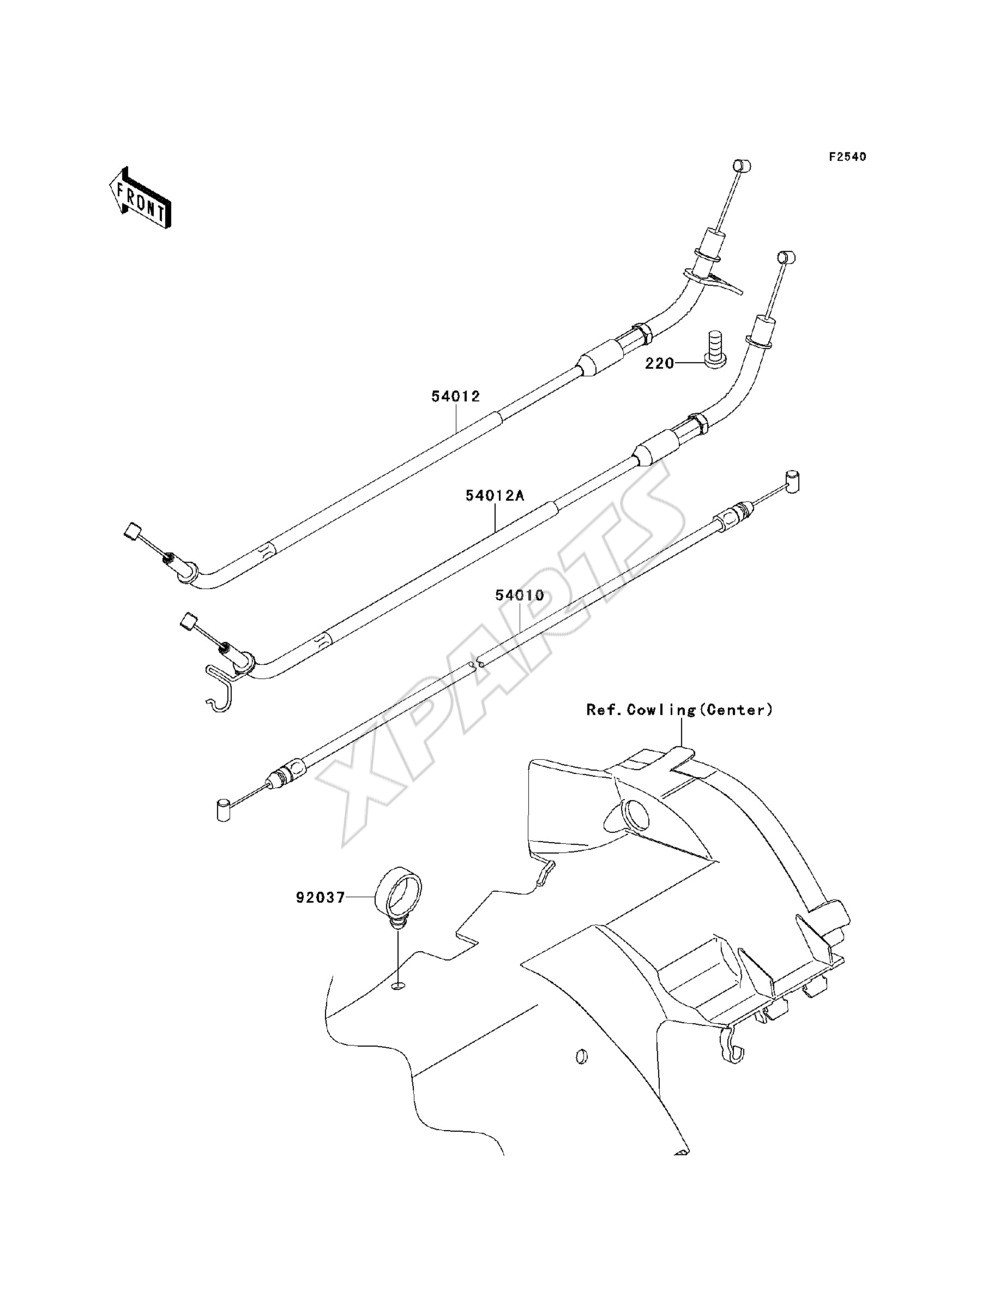 Kawasaki Vulcan Ignition Wiring Diagram On as well 89 Honda Goldwing Motorcycle Wiring Schematics besides 2000 Rc51 Wiring Diagram moreover Gl1800 Wire Harness together with 2010 Goldwing Wiring Diagram. on gl1500 trailer wiring diagram